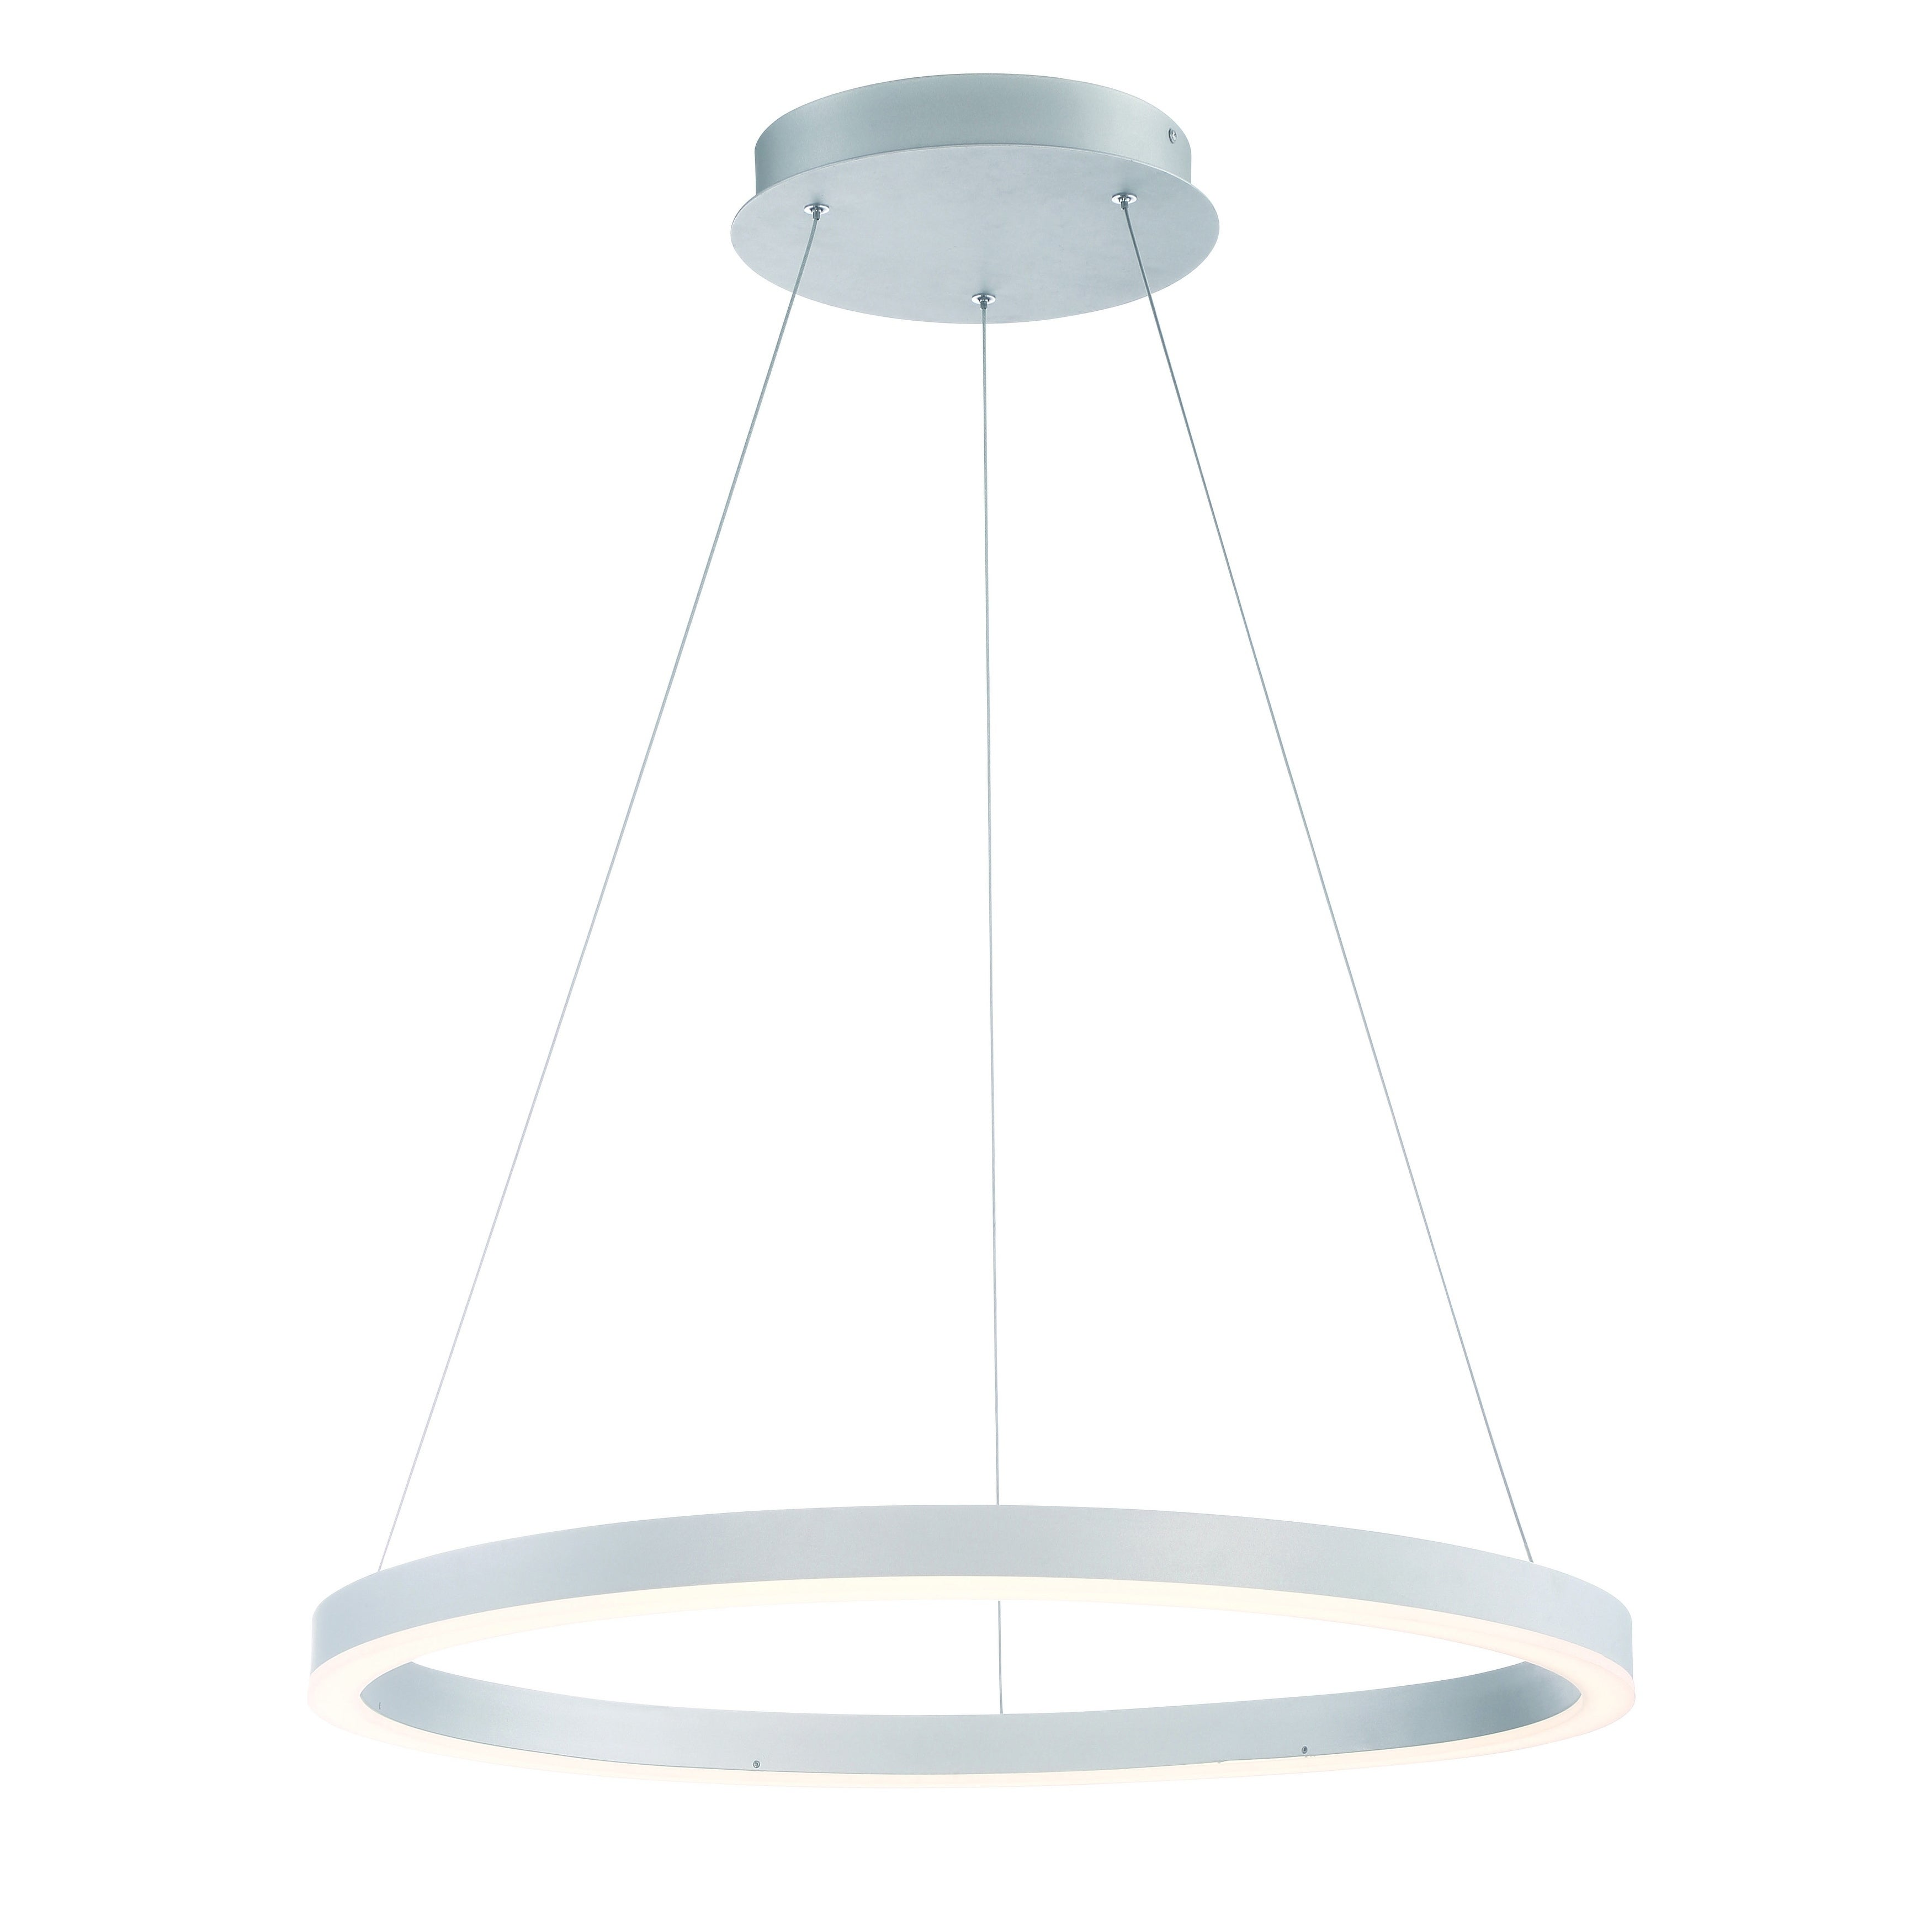 diffused lighting fixtures. Eurofase Spunto Oversized LED Ring Chandelier, Aluminum Finish With Opal Diffused Shade, 27.5 Inches In Diameter - 31471-015 Free Shipping Today Lighting Fixtures M